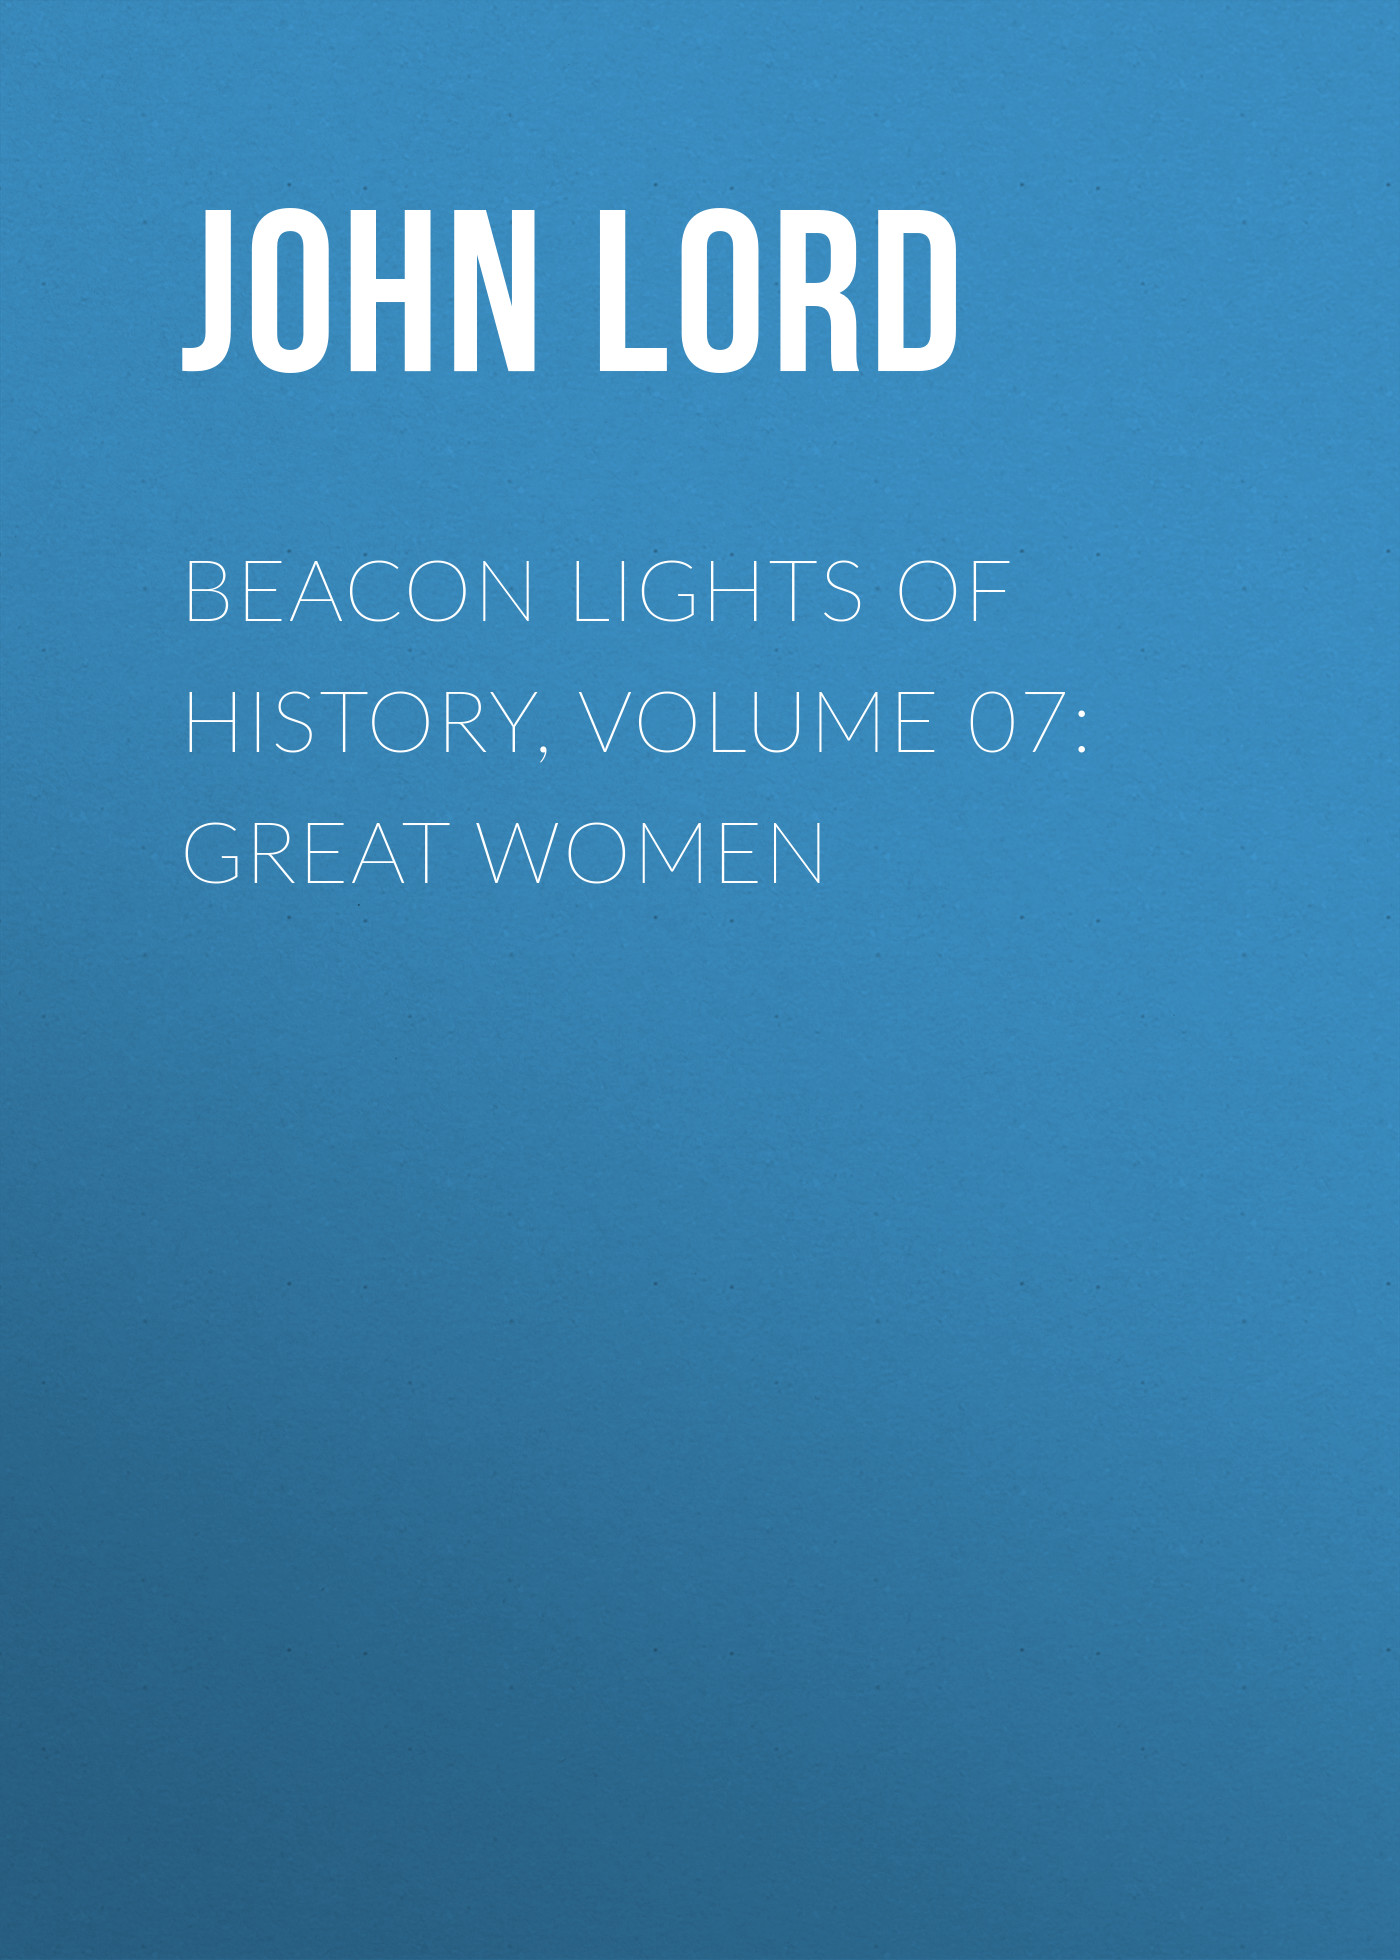 John Lord Beacon Lights of History, Volume 07: Great Women john lord beacon lights of history volume 07 great women